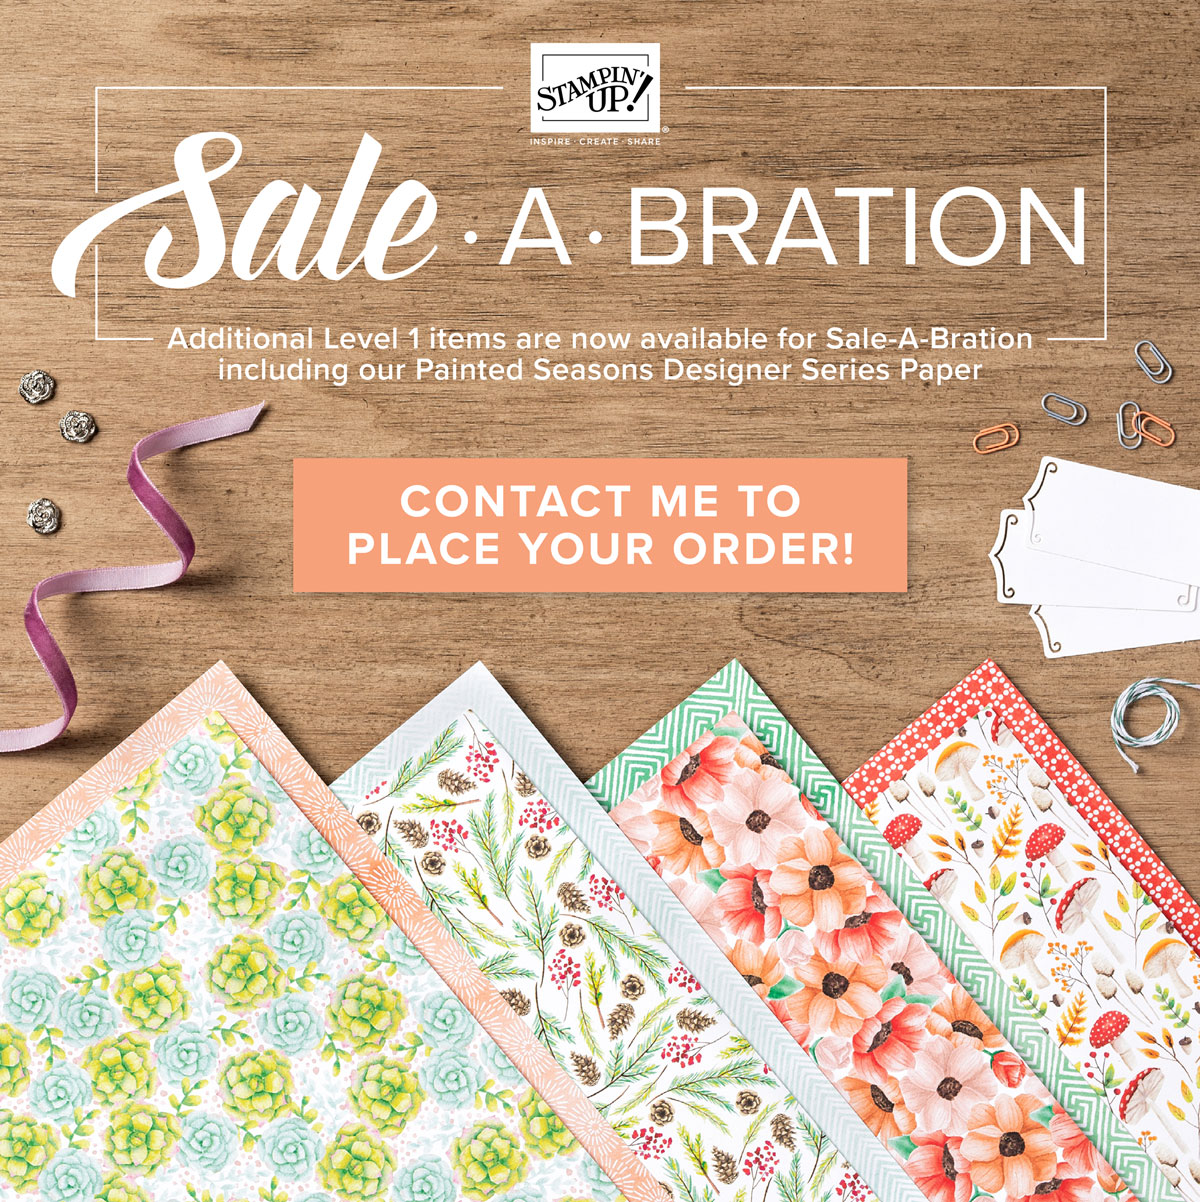 Stampin Up, promotion, sale-a-bration, SAB, #creativeleeyours, wendy lee, creatively yours, free products, stamping, paper crafting, handmade, Craft & Carry Tote, stampin up, SU, creative-lee yours, carry bag, Diemonds team, business opportunity, DIY, fellowship, 2nd release